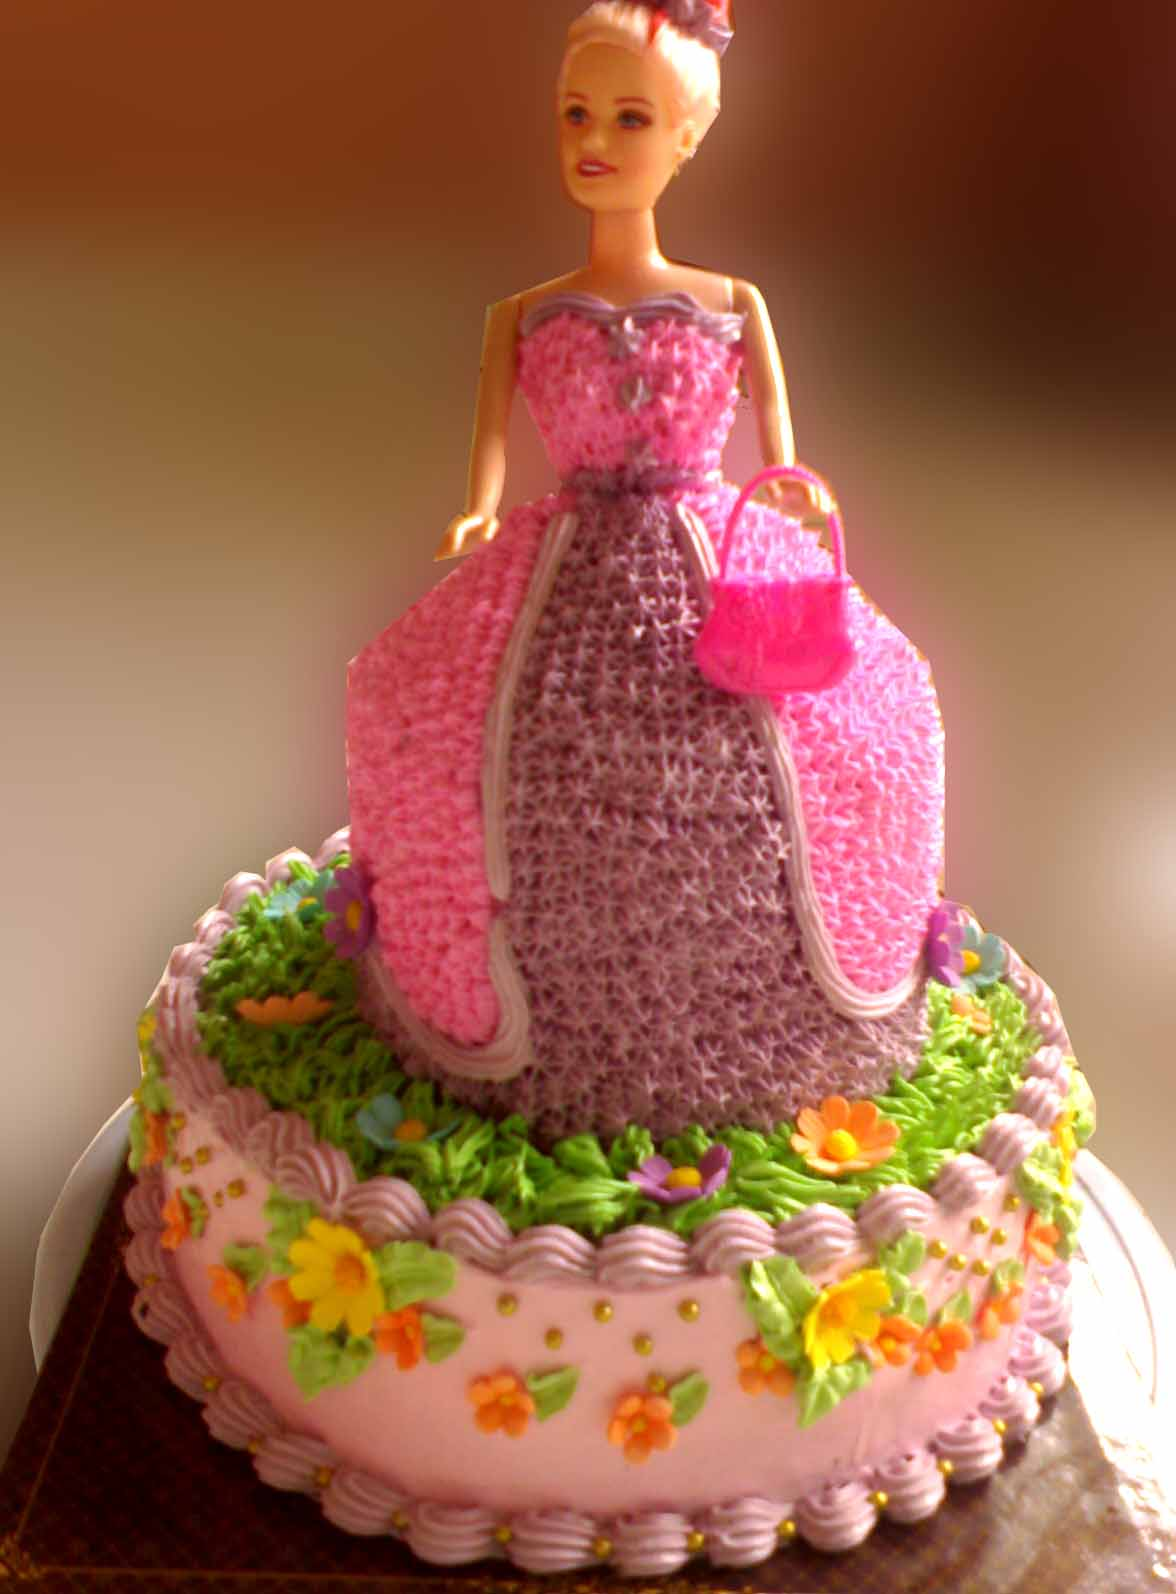 Cake Design Images Hd : Recept: Barbie torta - Ajandek, egyben torta (kep)